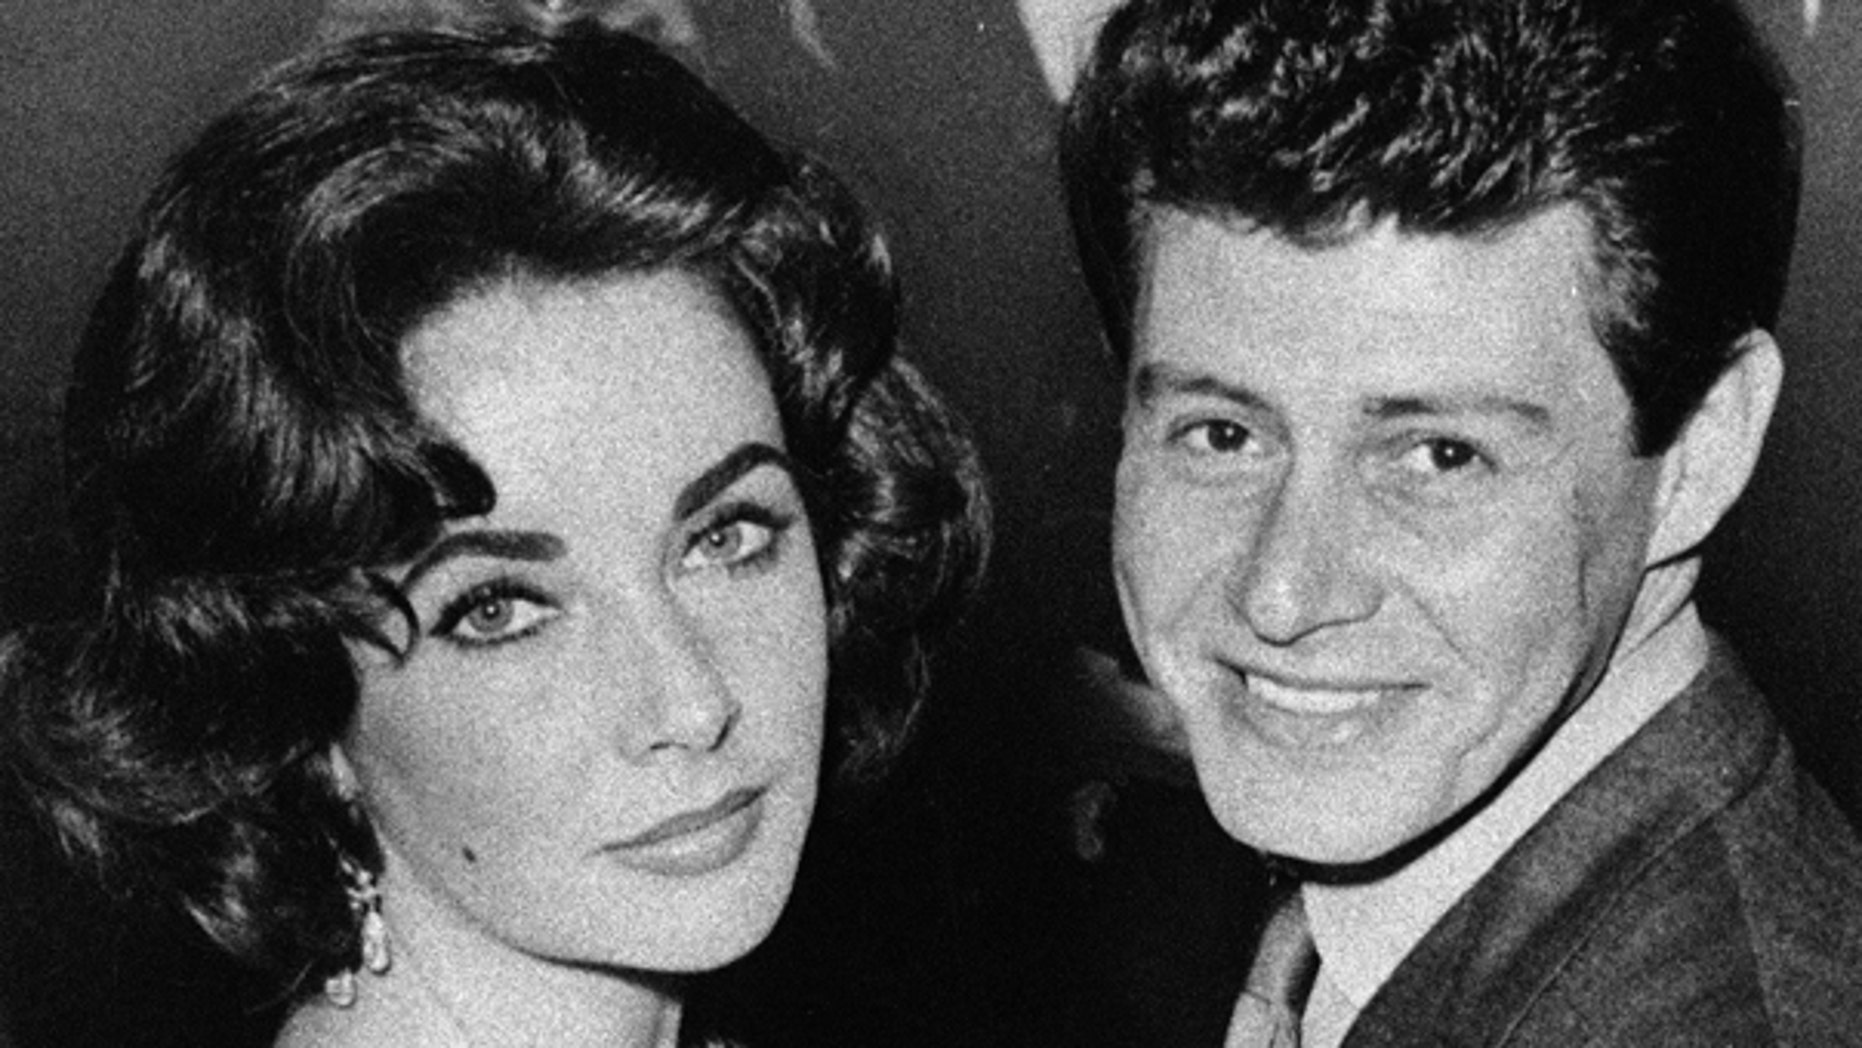 In this 1959 file photo, actress Elizabeth Taylor is seen with singer Eddie Fisher before their marriage. Fisher, whose huge fame as a pop singer was overshadowed by scandals ending his marriages to Debbie Reynolds and Taylor, died Wednesday night, Sept. 22, of complications from hip surgery at a hospital in Berkeley.